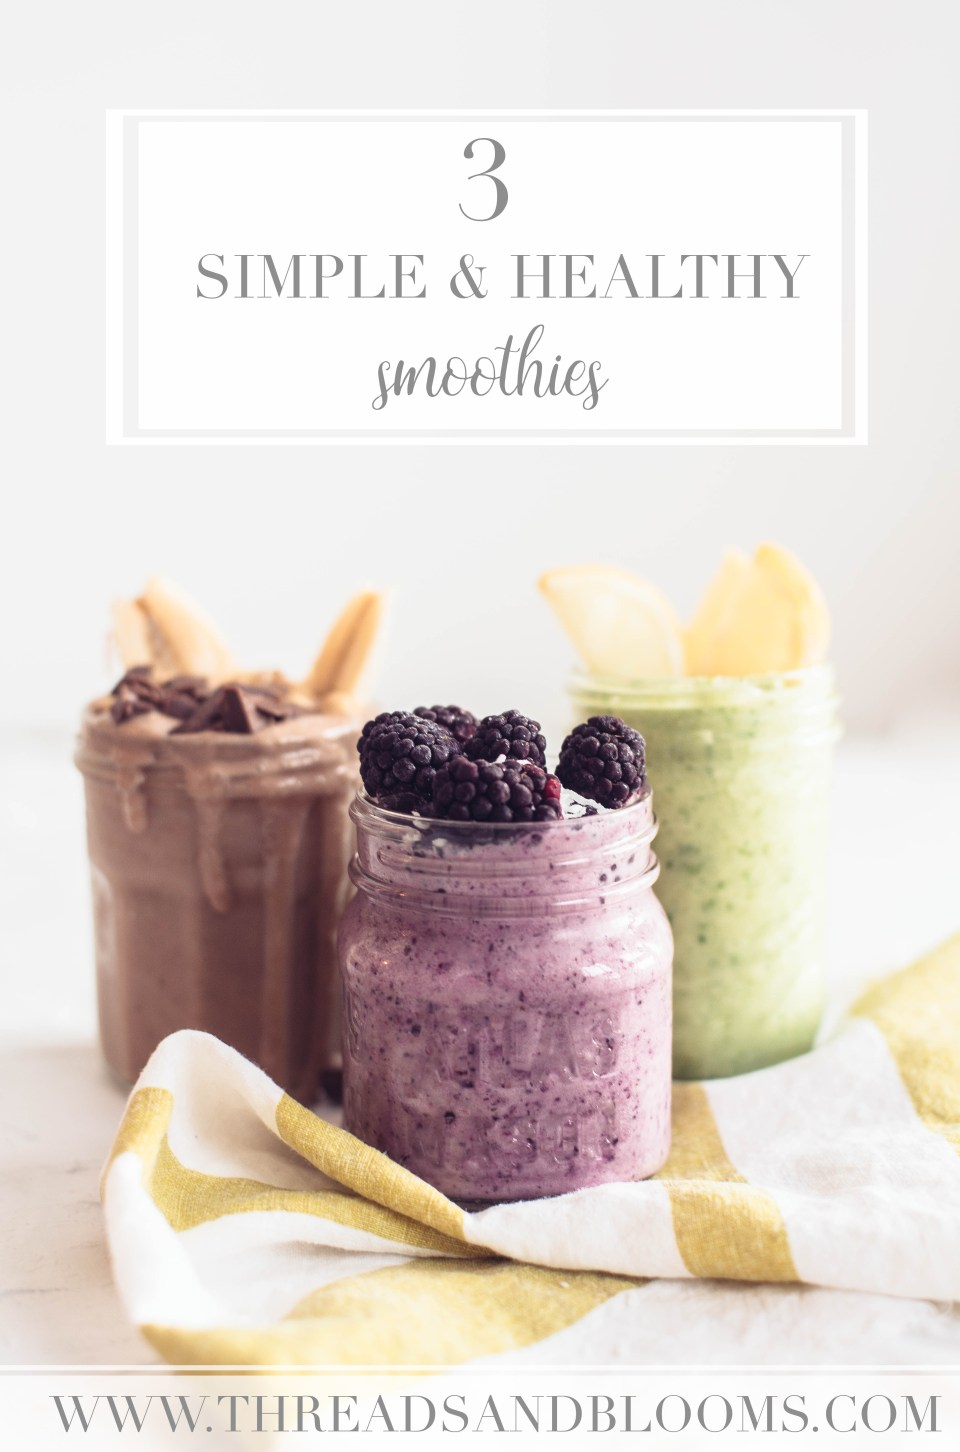 3 Smoothie Recipes - Peanut Butter Smoothie, Berry Coconut Smoothie, and Citrus Ginger Green Smoothie. Simple and healthy smoothies.